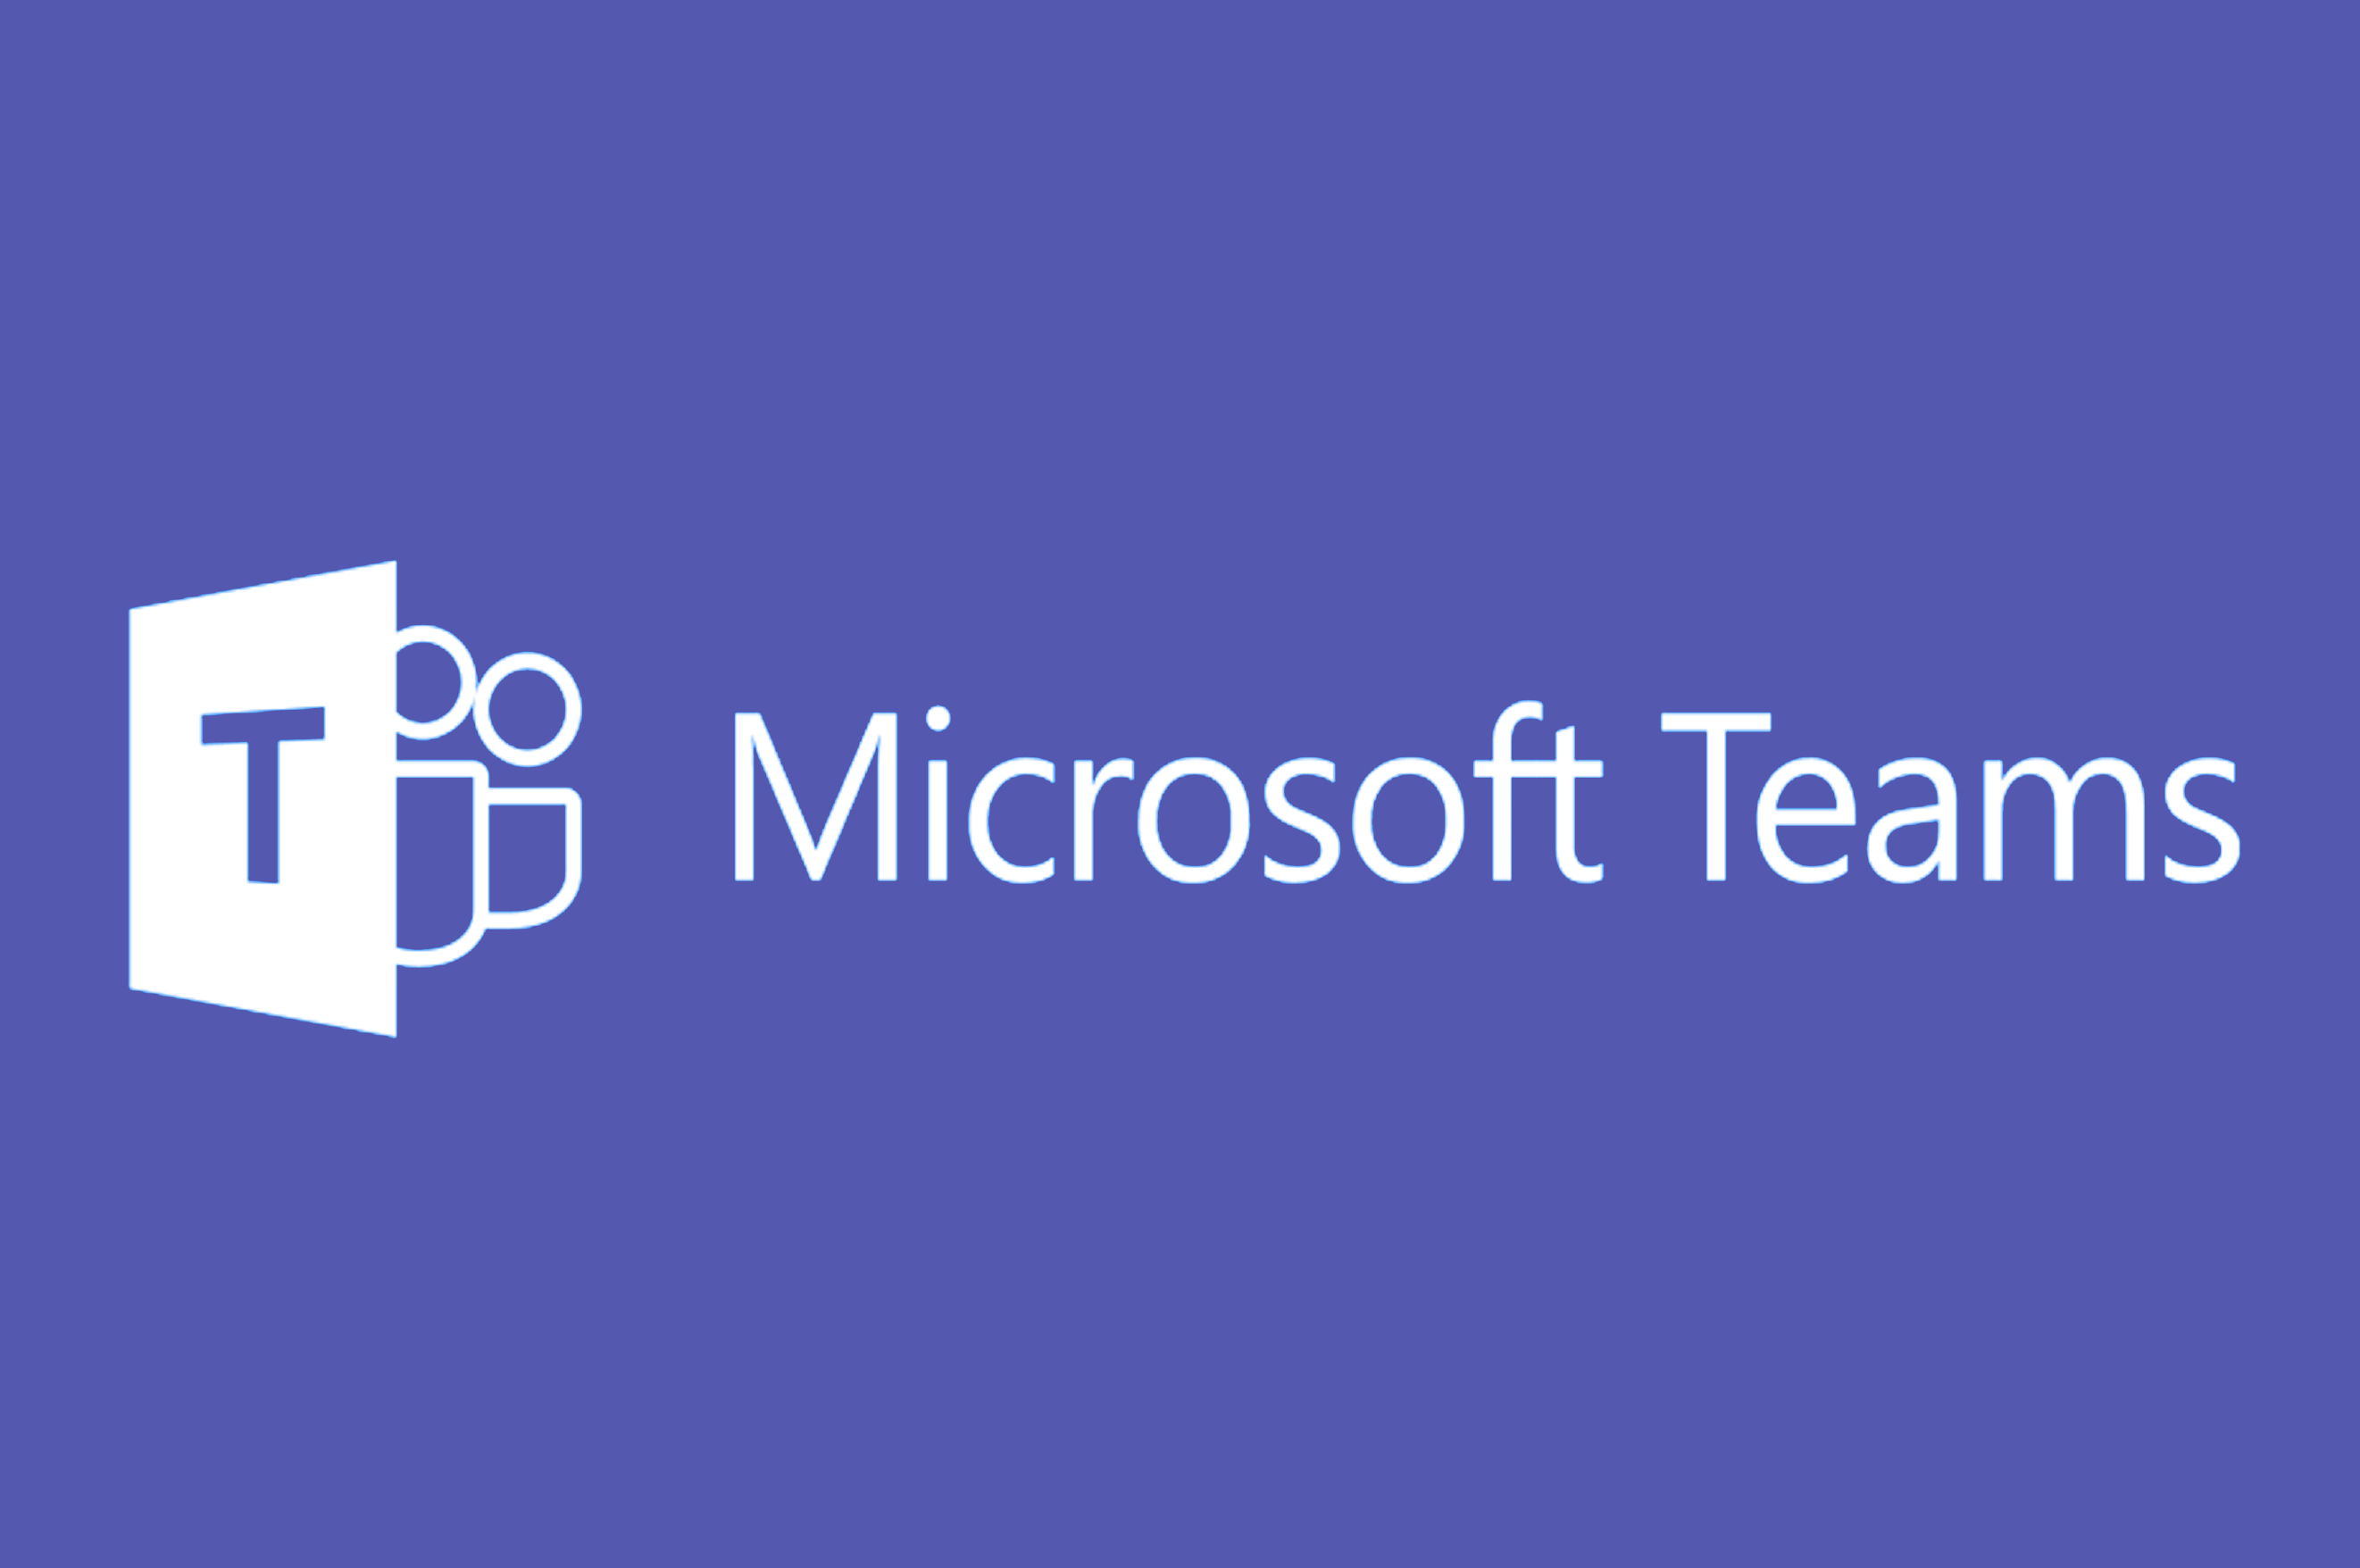 Microsoft Teams is Now Free. Here's Why That's Great News.